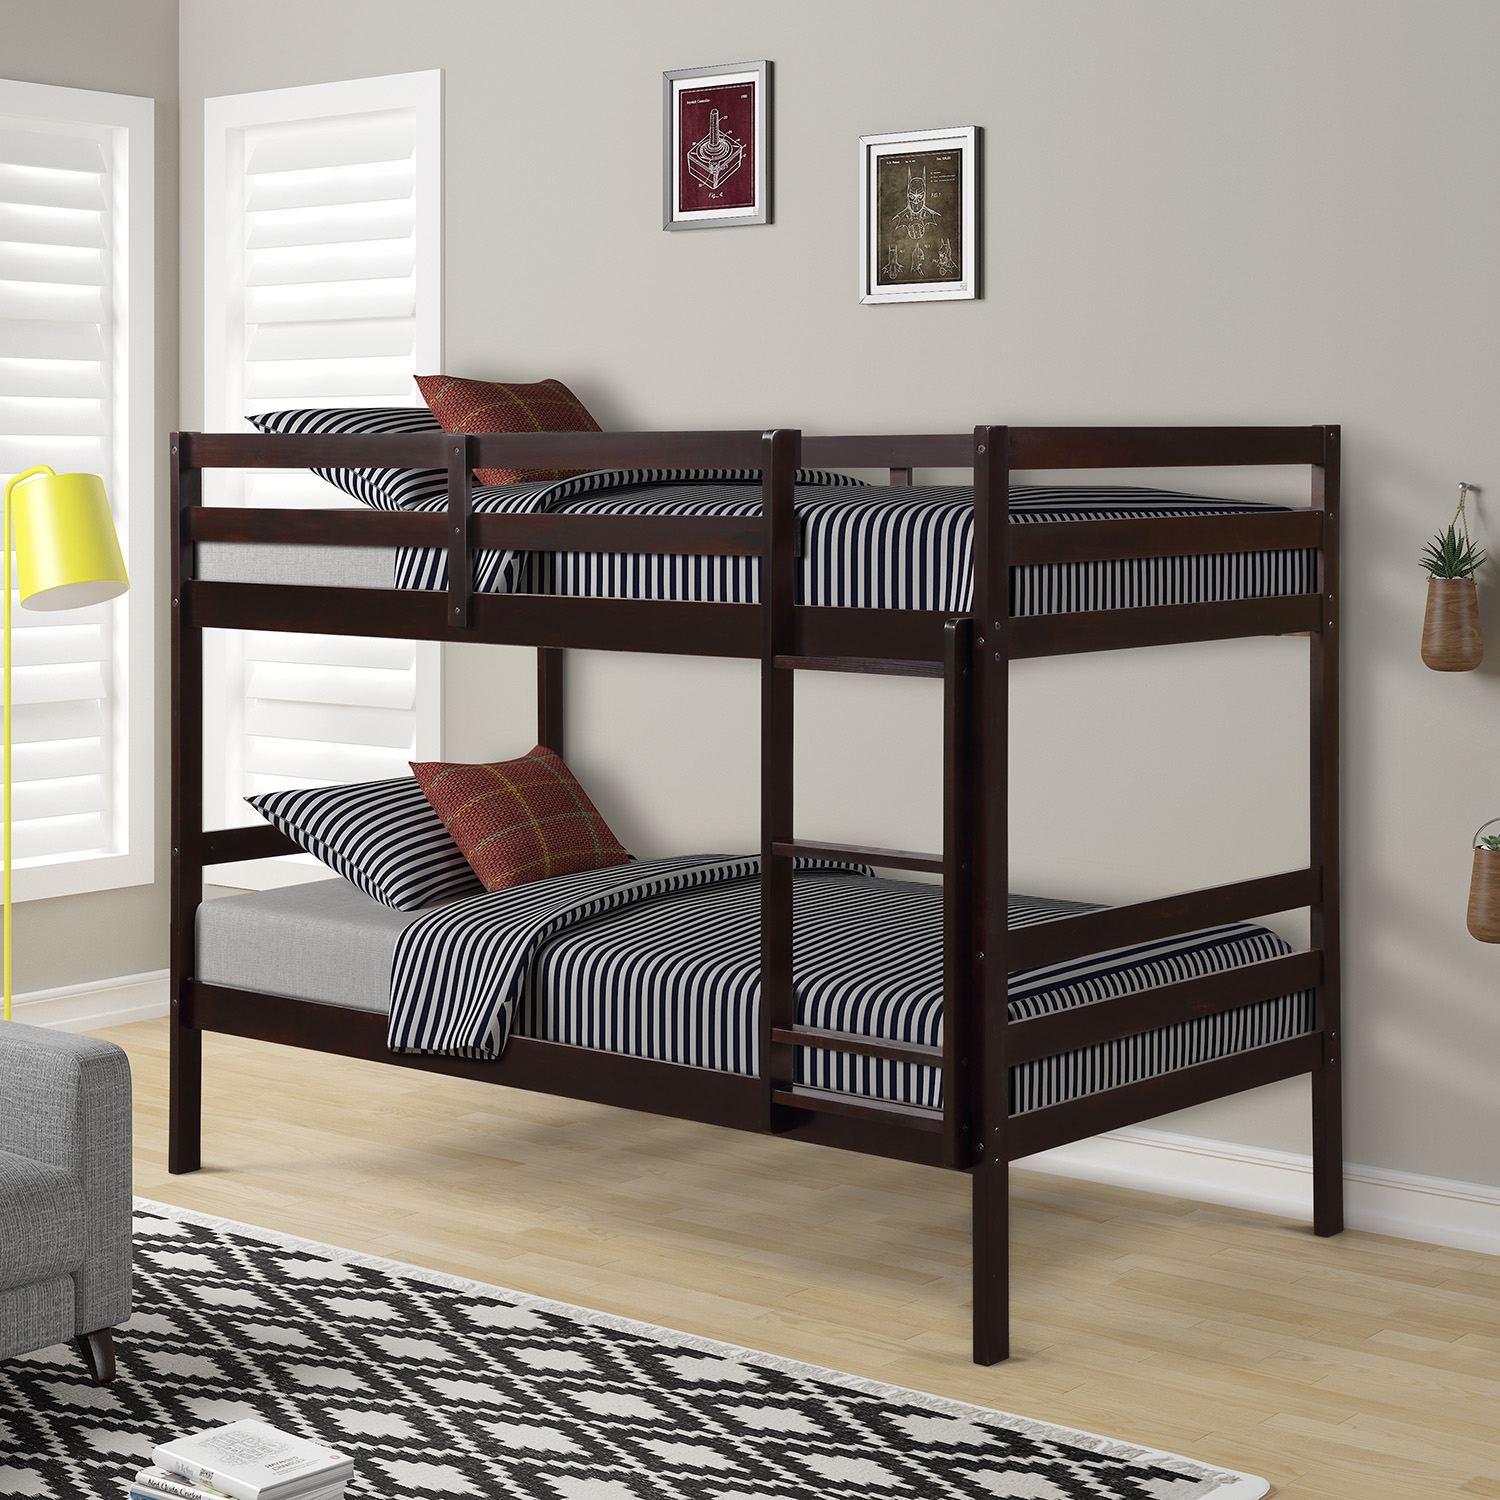 Twin over Twin Solid Wood Bunk Bed Double Bed